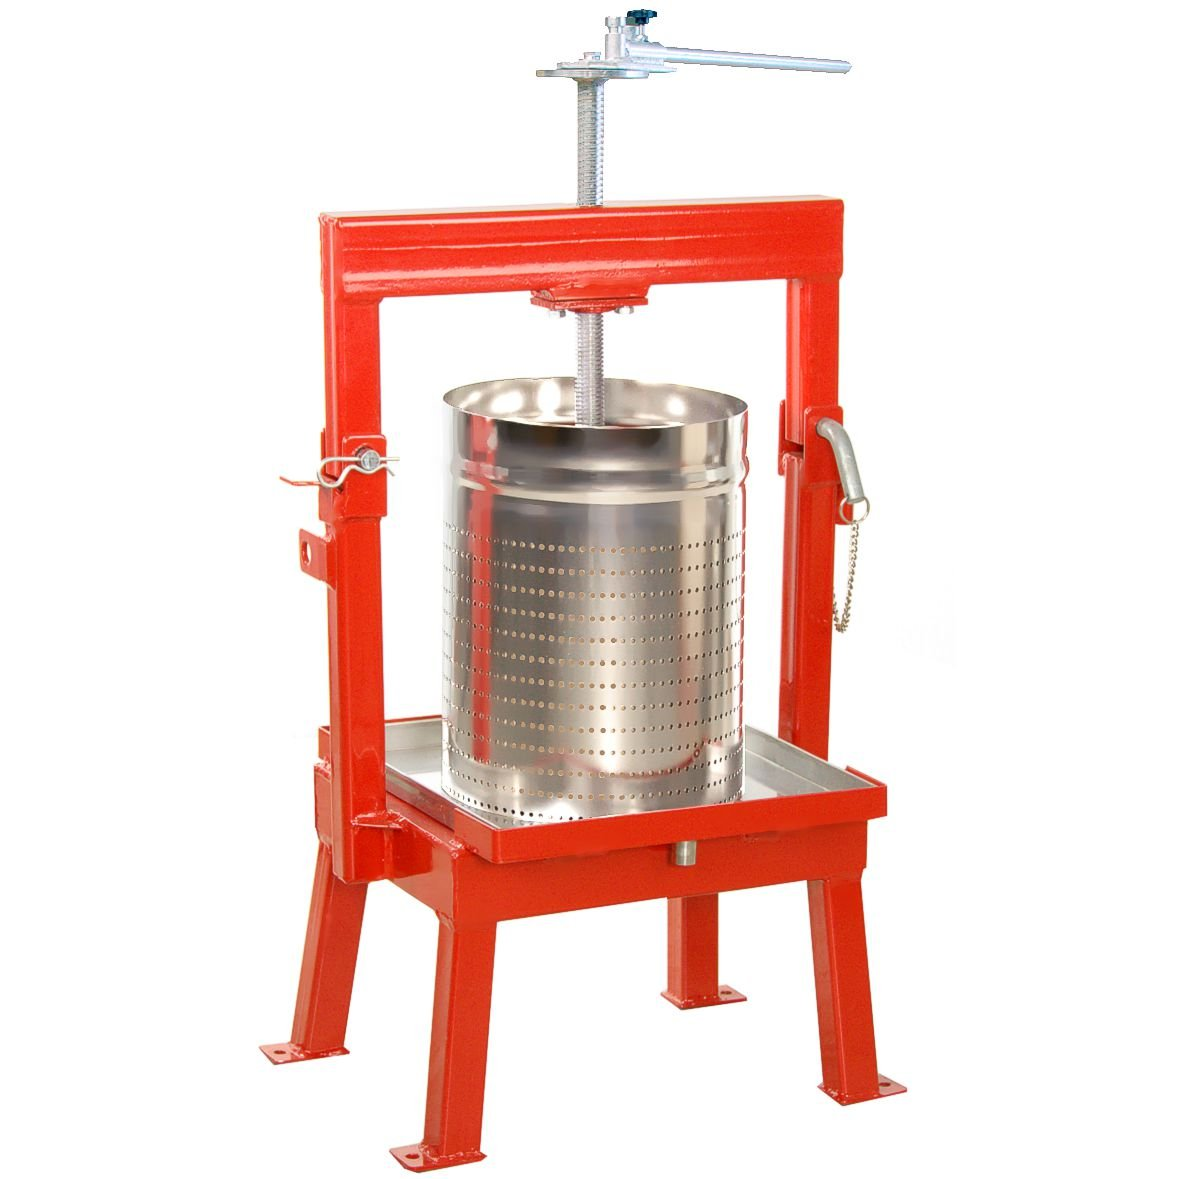 Maximizer Fruit Press 36 Liter + Stainless Basket for Cider, Wine, Apples, Grapes by Maximizer